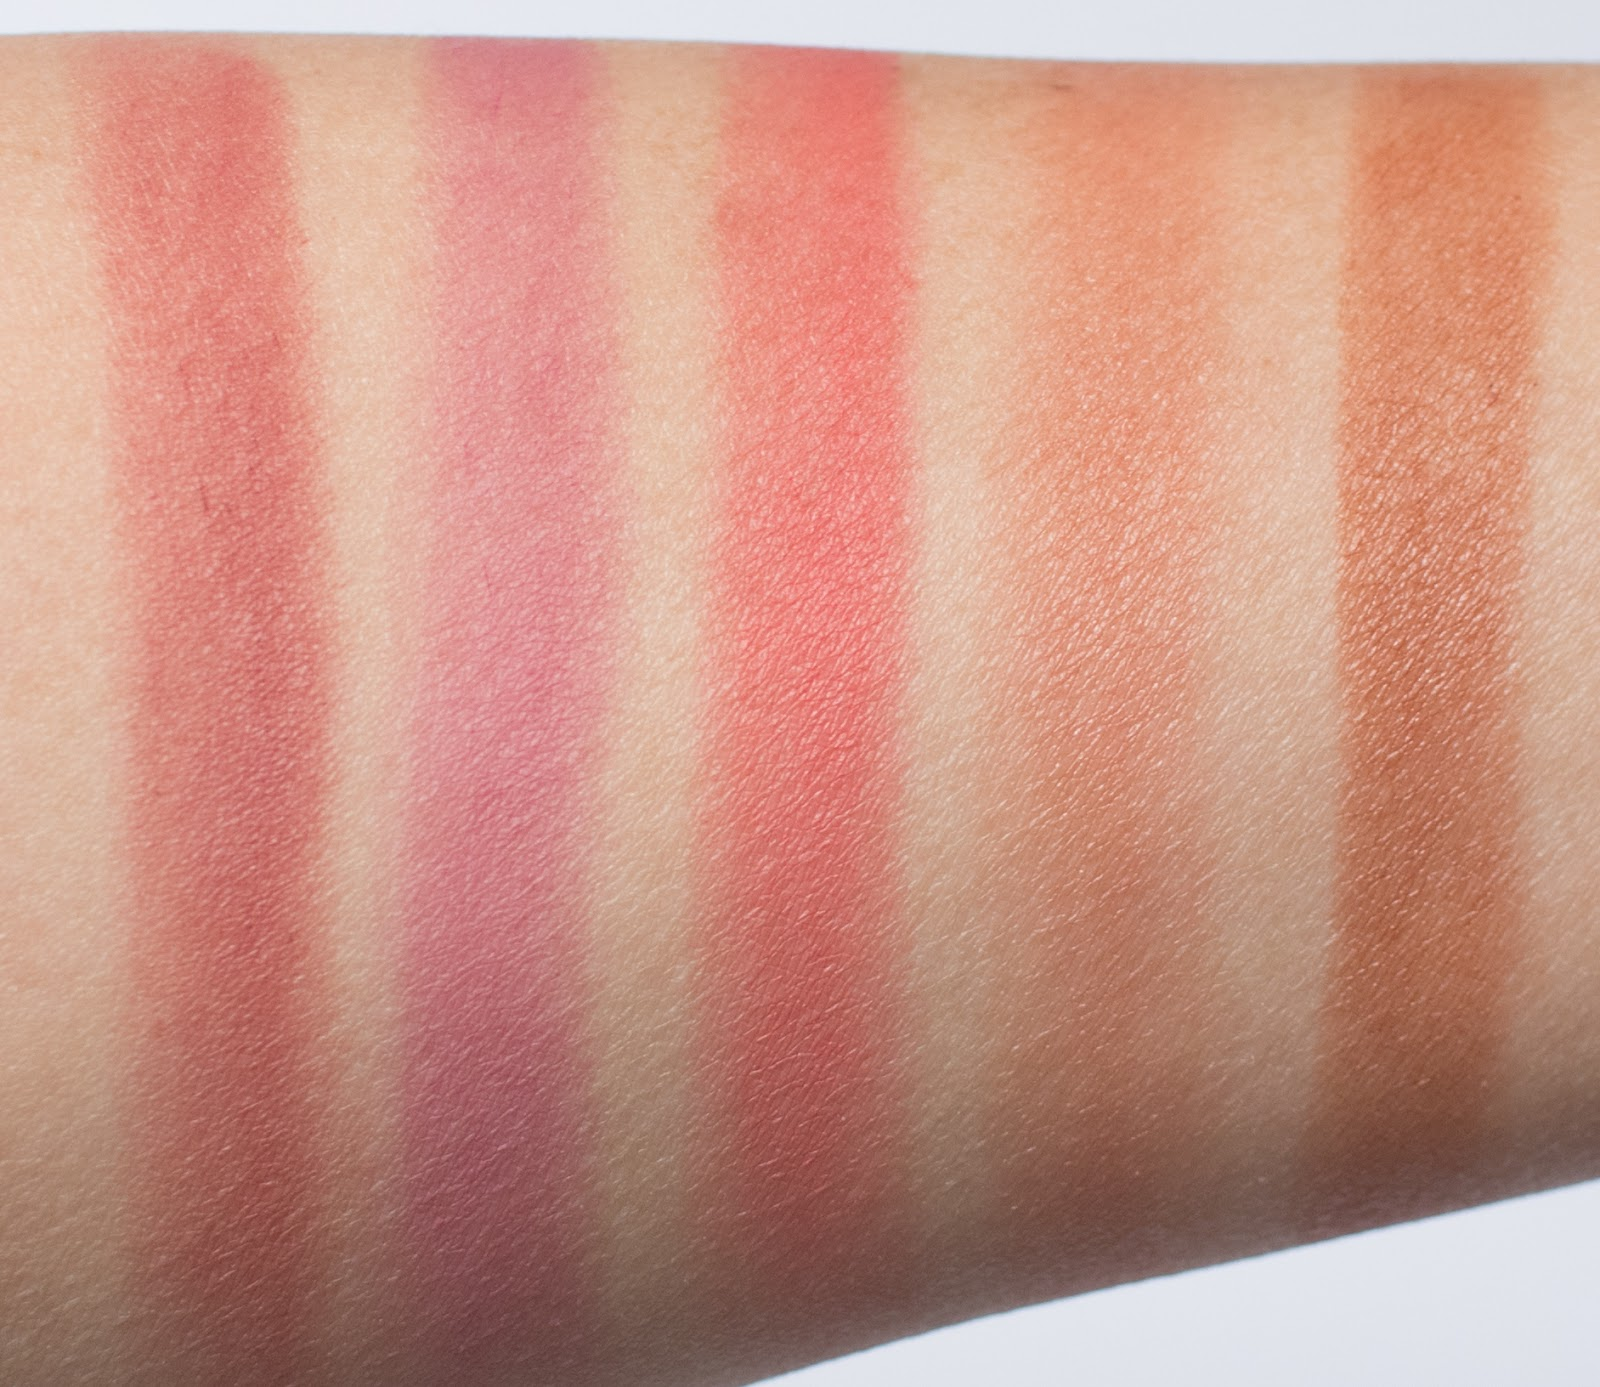 Colourpop Blotted Lip vs Glossier Generation G Lipstick Comparison Arm Swatches